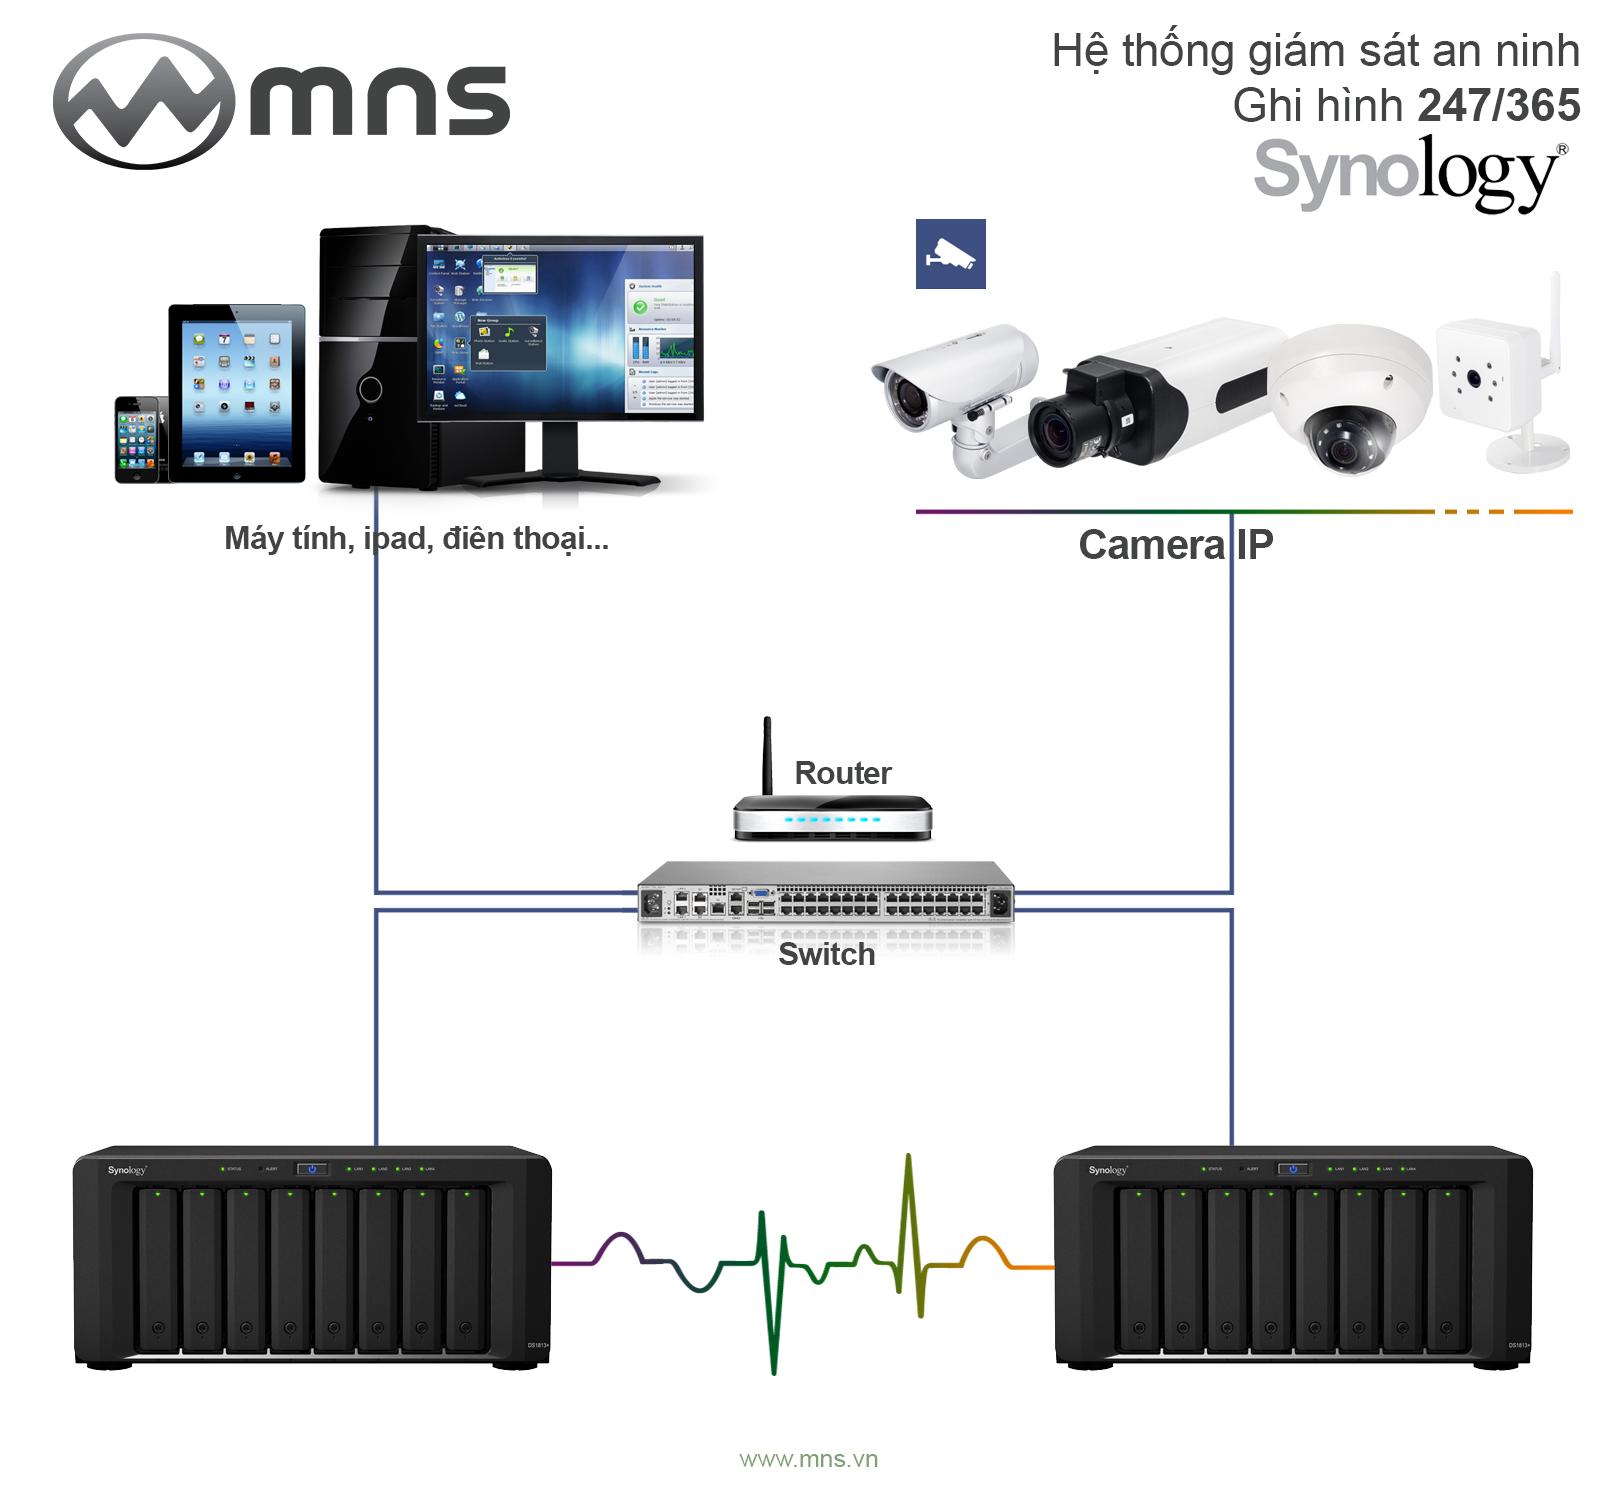 nvr_Synology_vivotek_axis_ghi_hinh-camera_ip_24_7_365